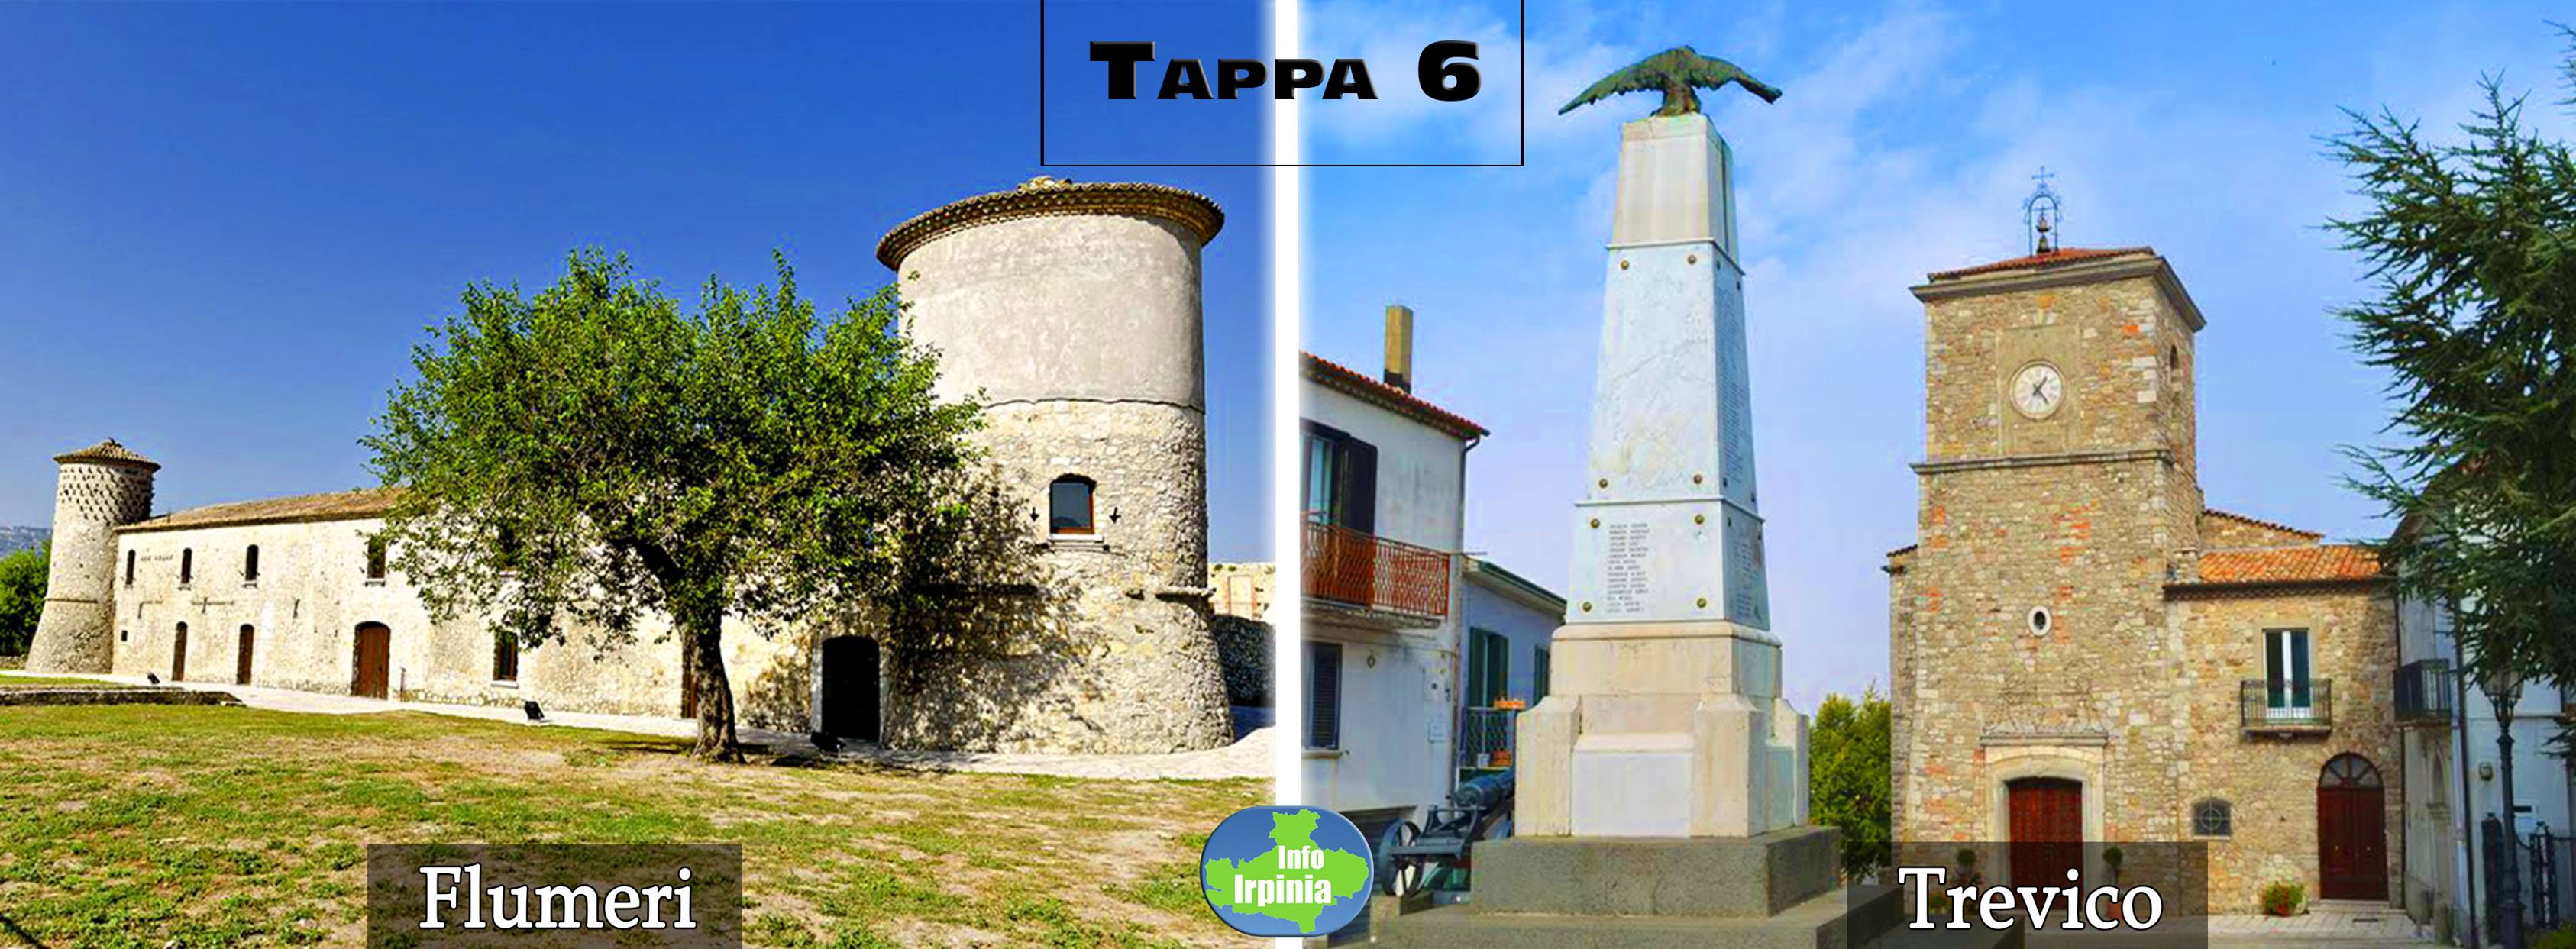 Tappa 6 di Estate in Irpinia 2016